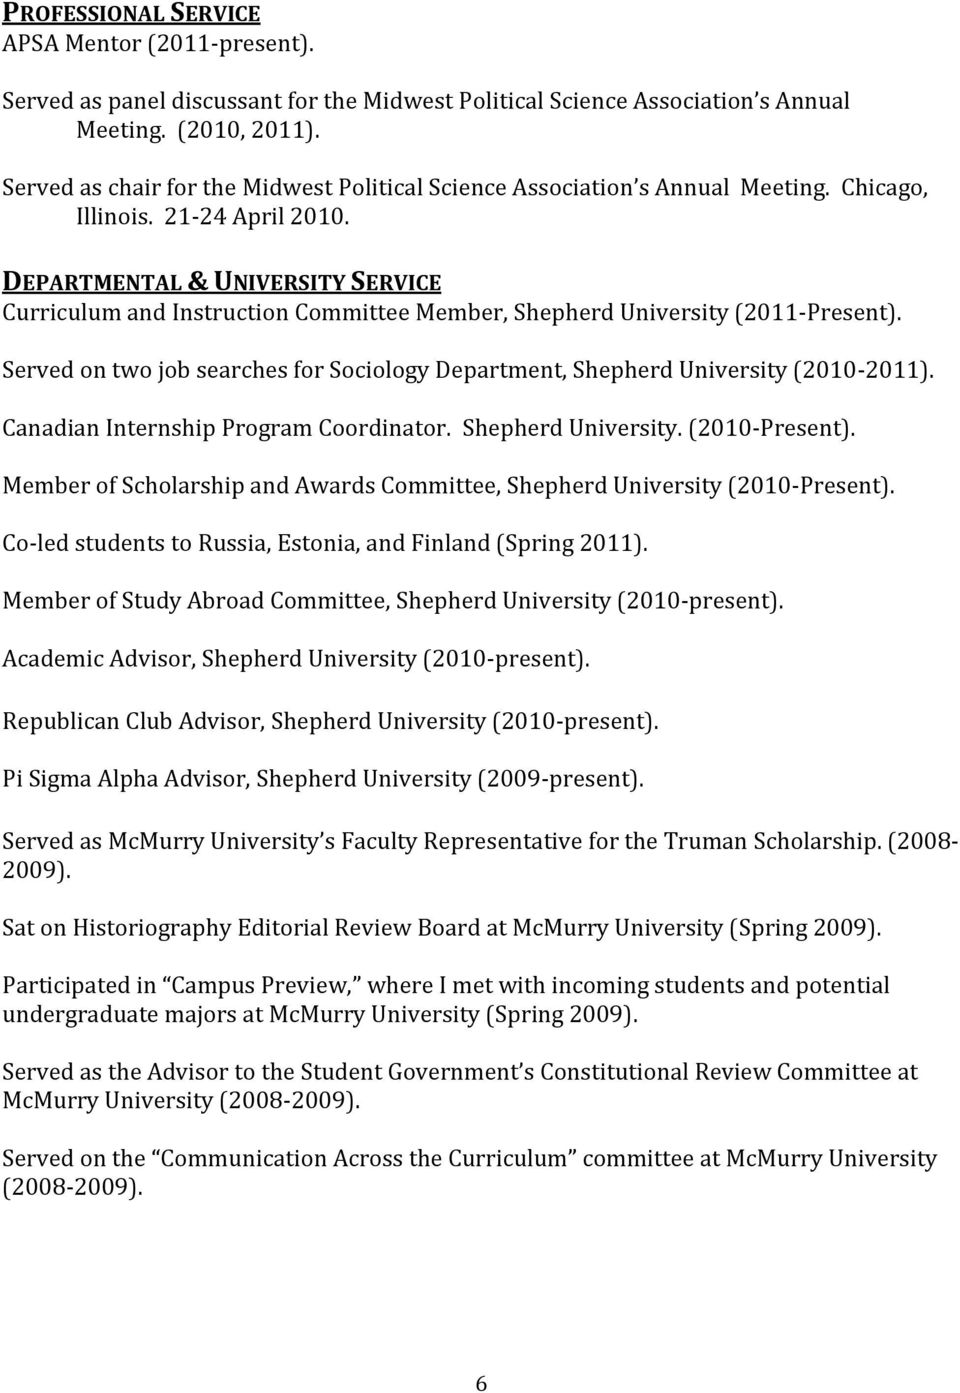 DEPARTMENTAL & UNIVERSITY SERVICE Curriculum and Instruction Committee Member, Shepherd University (2011-Present). Served on two job searches for Sociology Department, Shepherd University (2010-2011).